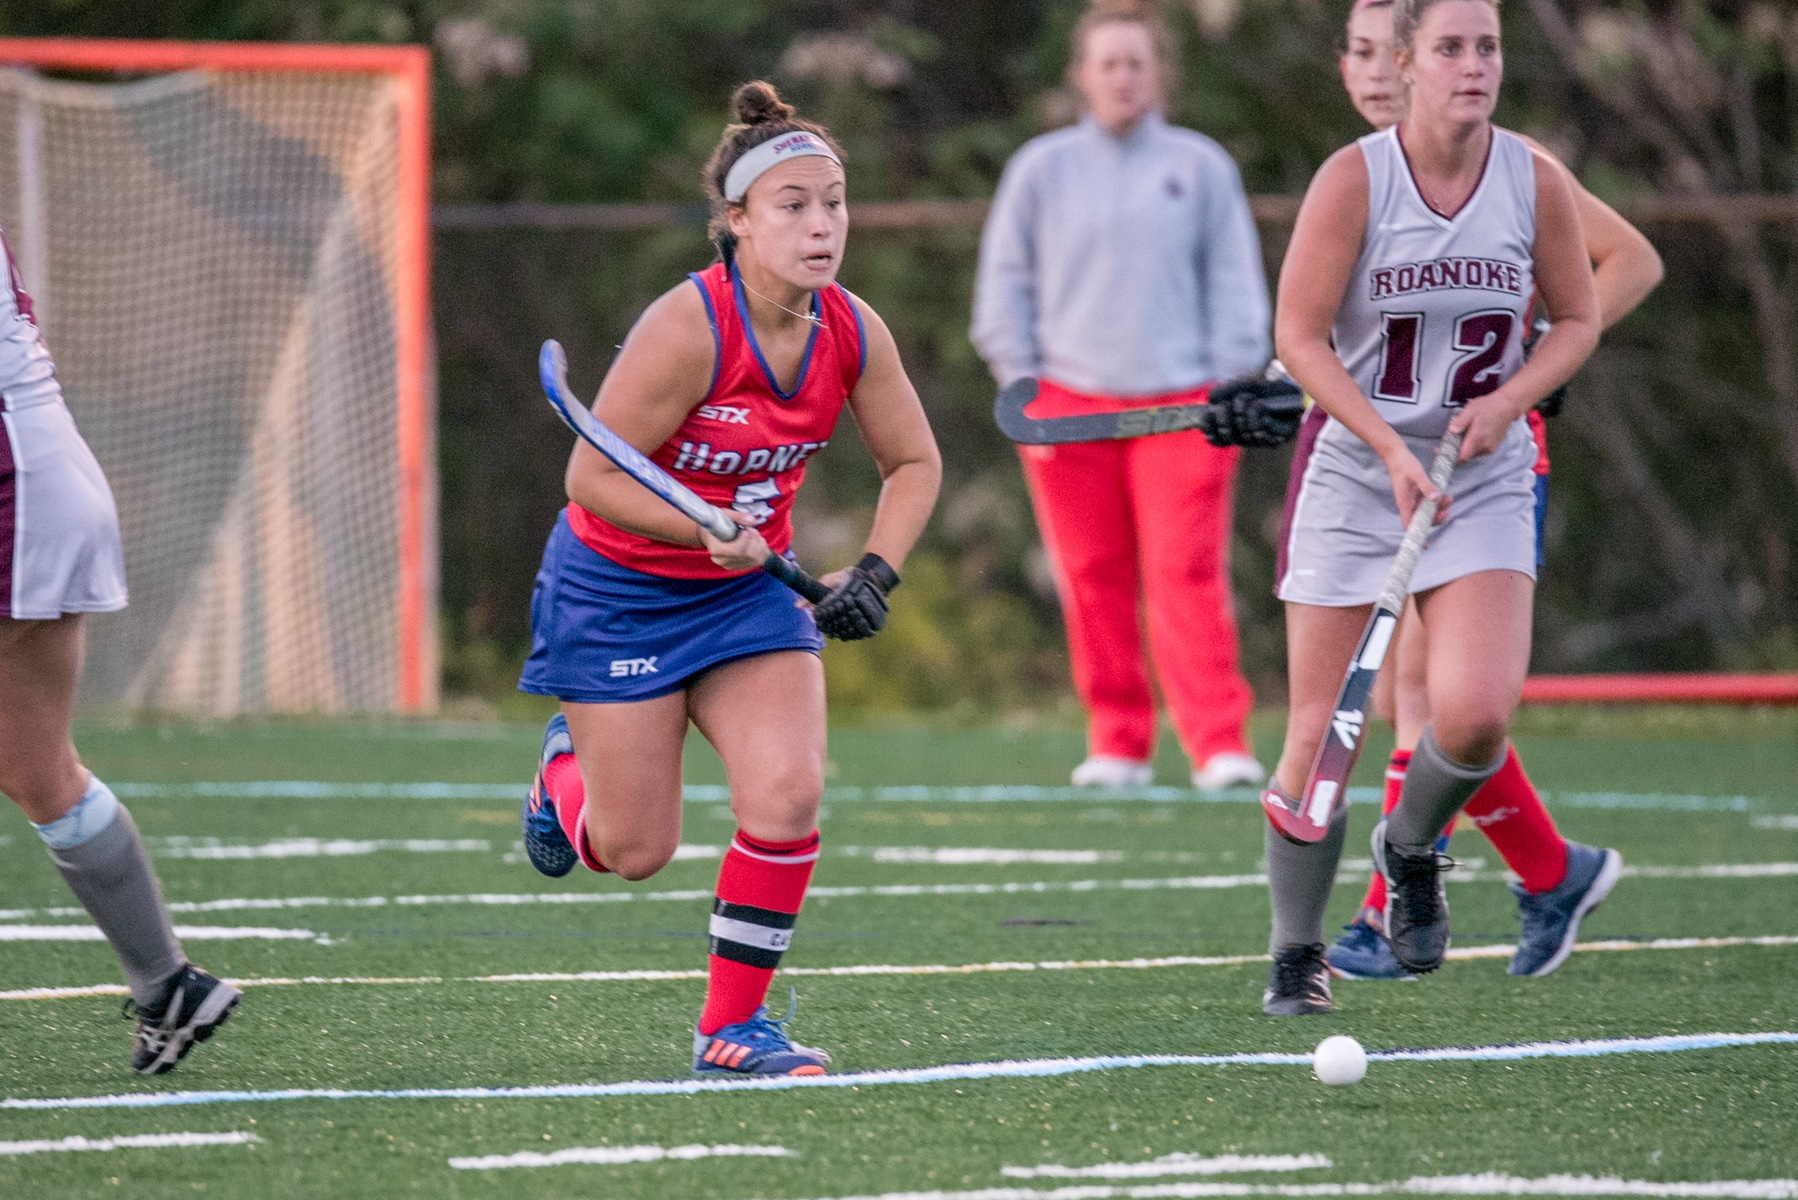 Morgan Payne was one of 49 President's List honorees this past fall and was named as the ODAC Scholar-Athlete of the Year for field hockey.